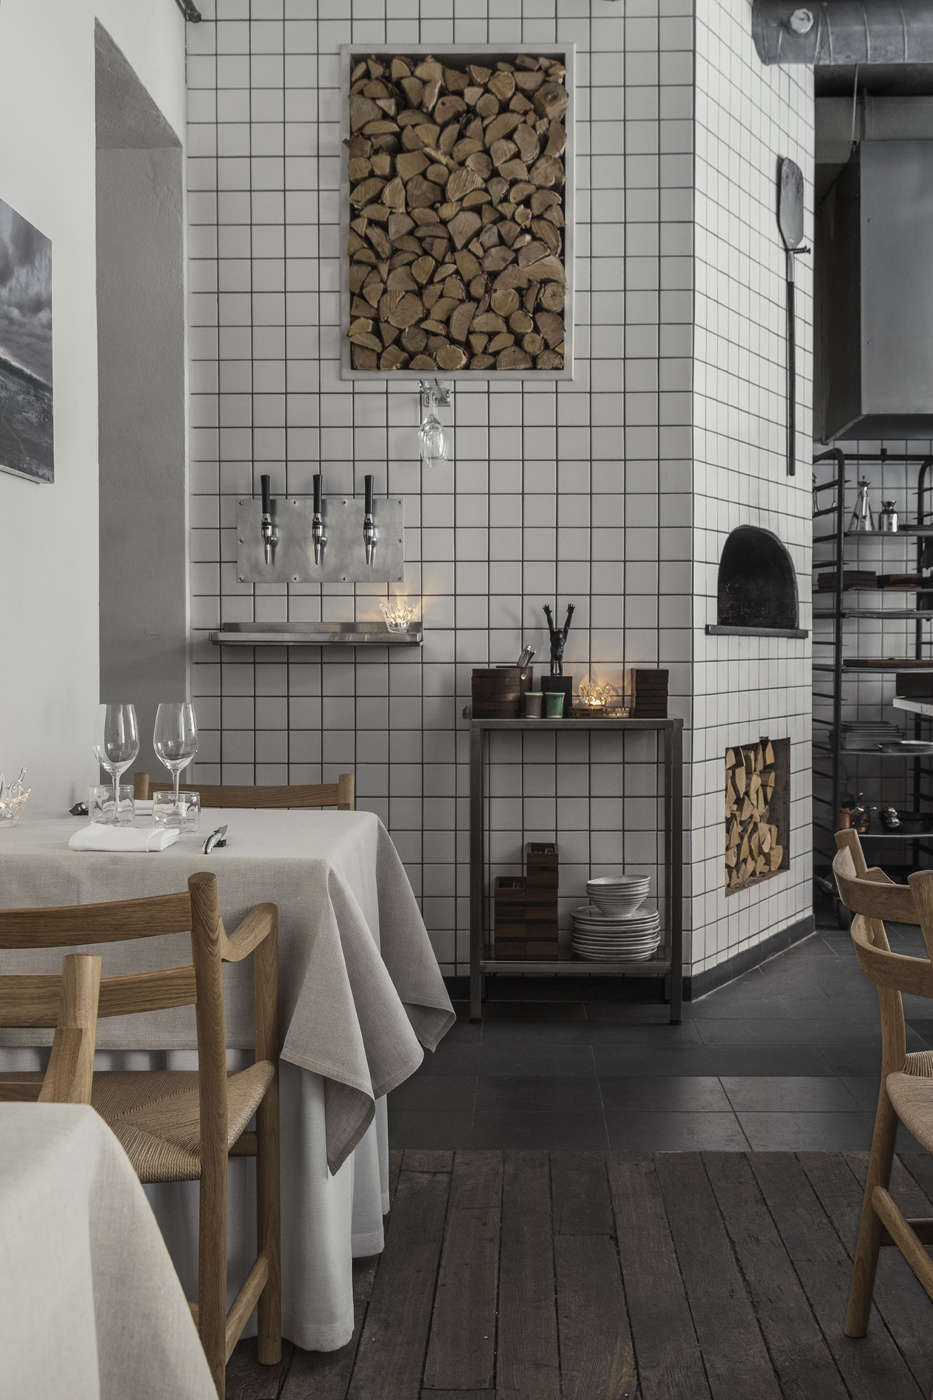 The tile continues into the dining area, where it surrounds a wood-fired oven. Niches in the wall that store cut firewood are both practical and beautiful, mixing rusticity with the glossy tile.